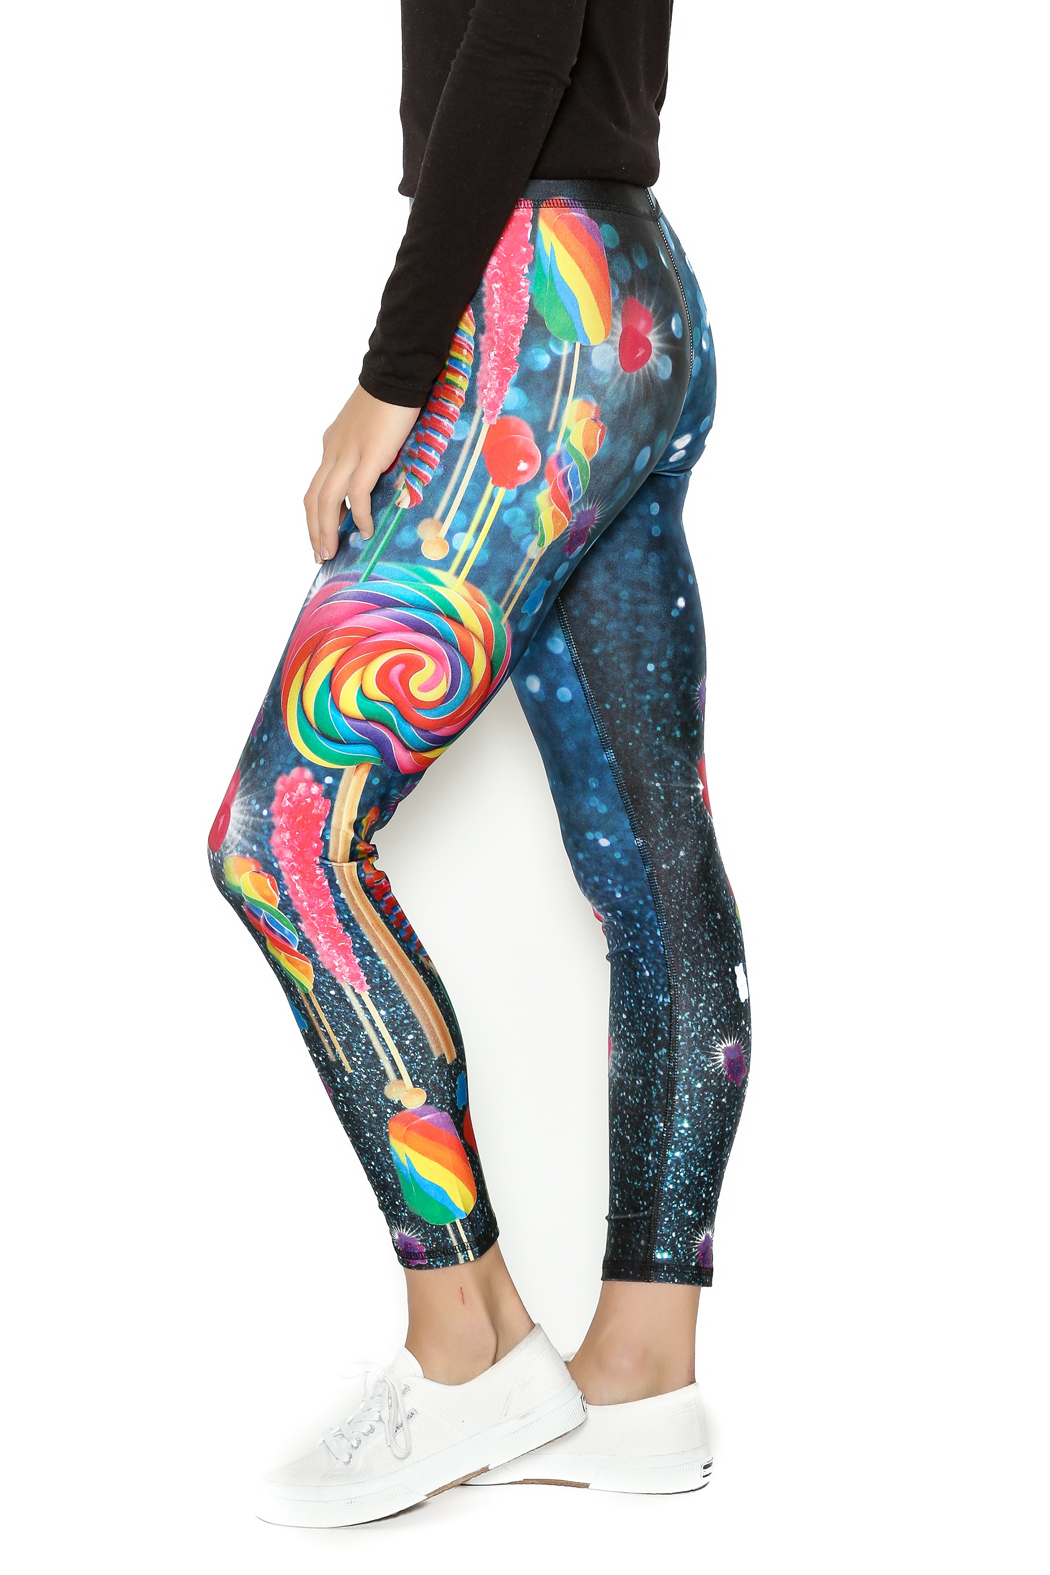 bbab8e882c963 Zara Terez Dylans Candy Leggings from New York City by Olive and ...